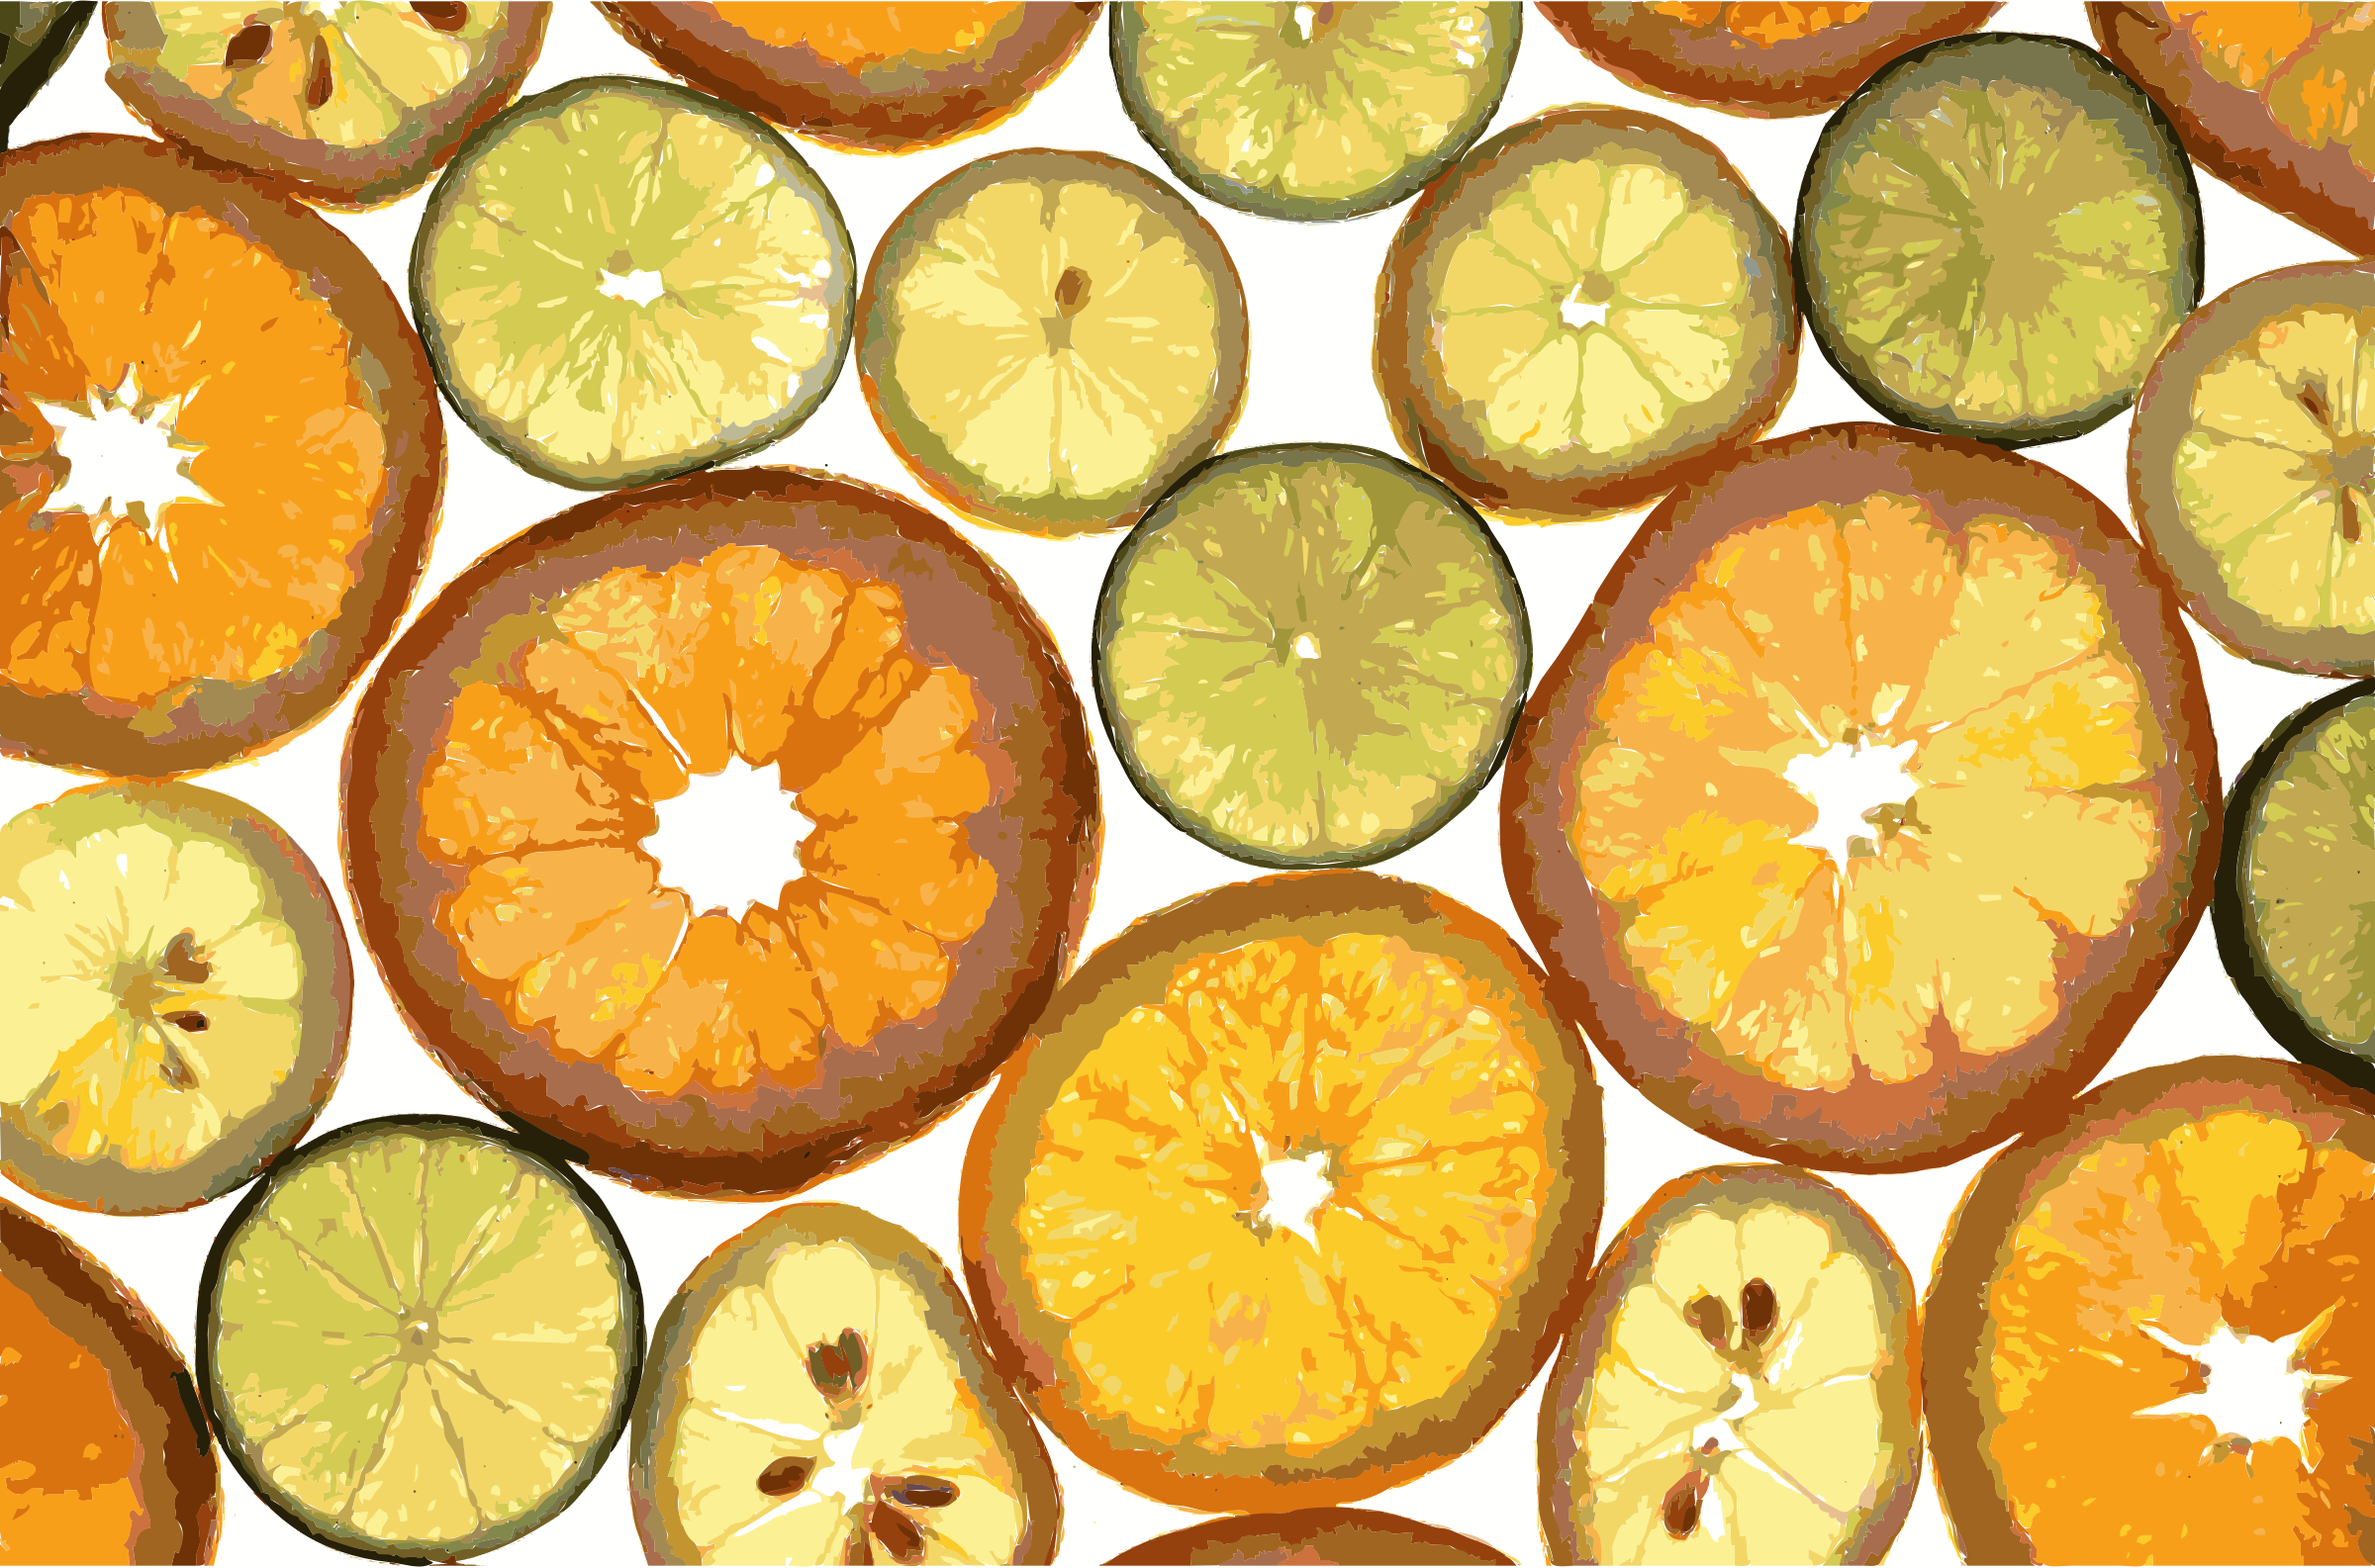 Citrus fruits by 5n8ag4+endyauppxpaas